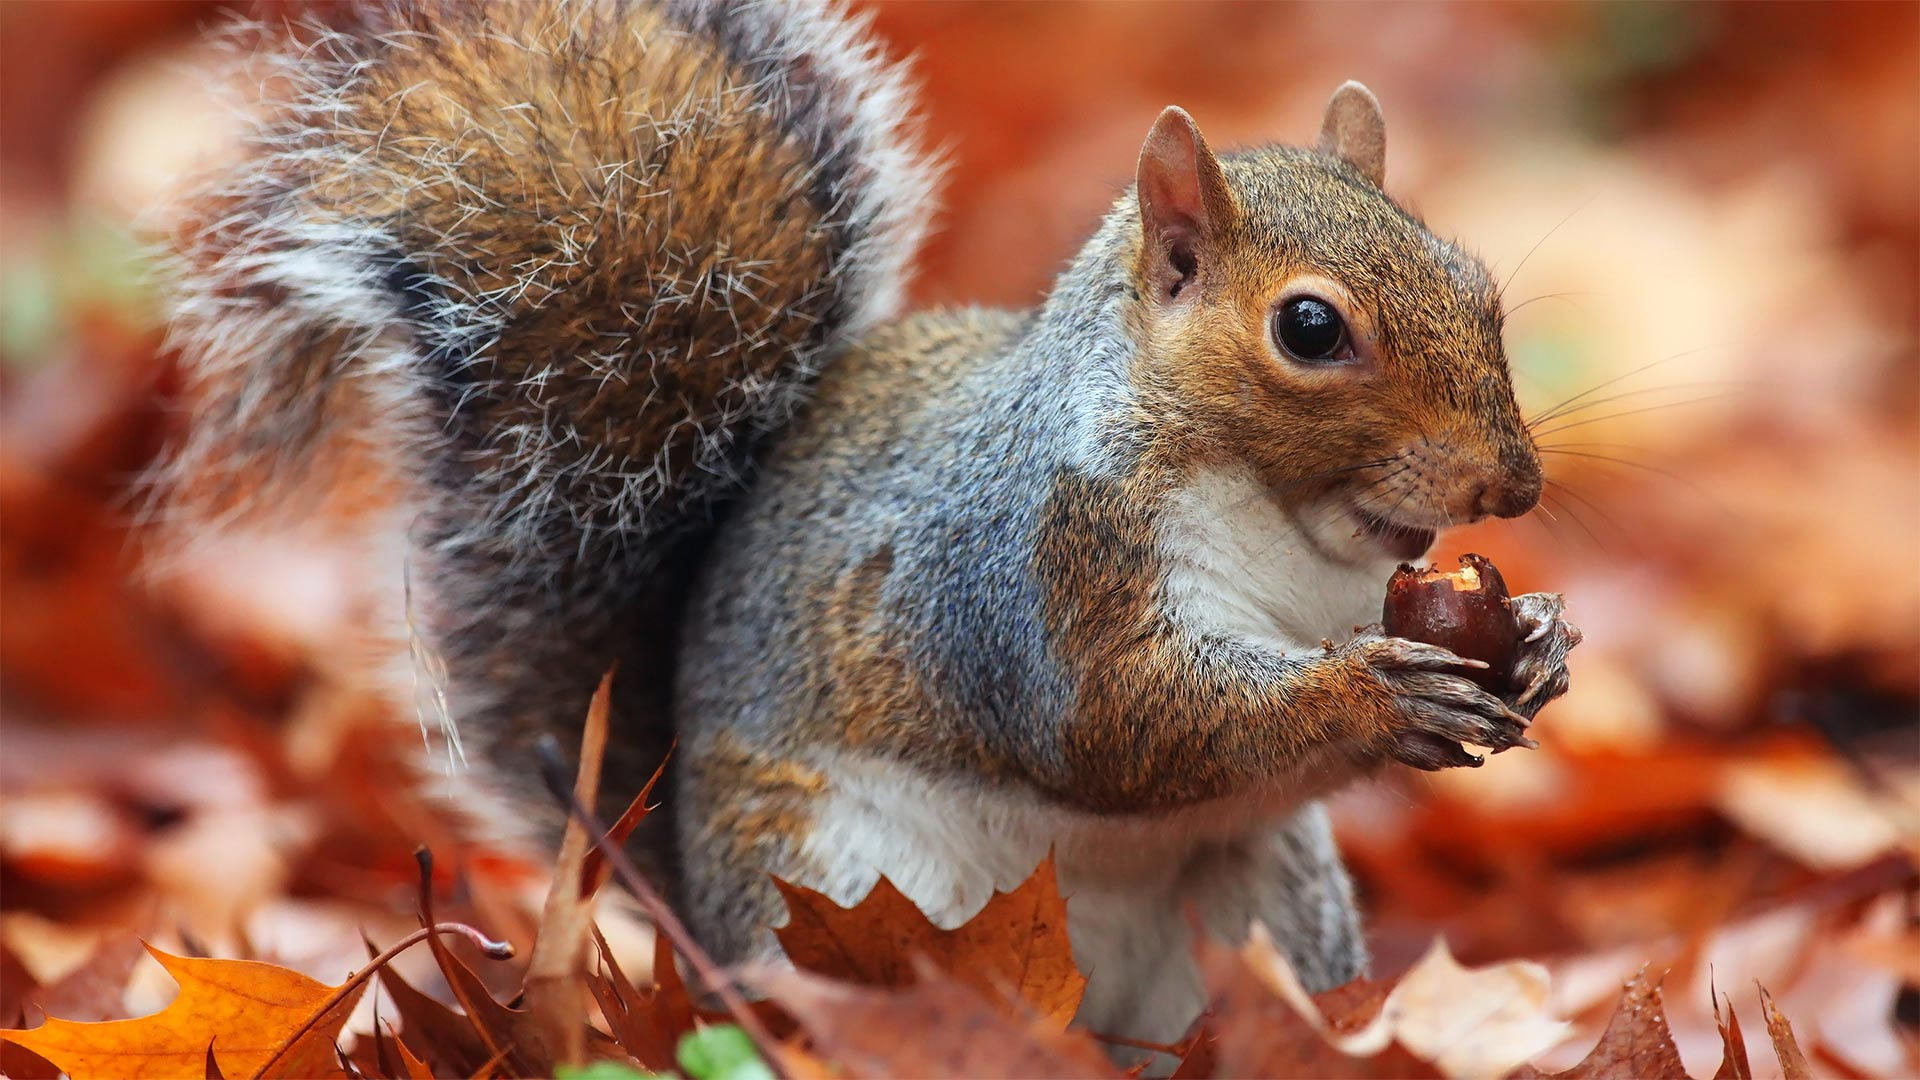 The fox squirrel is the largest tree squirrel species in North America.